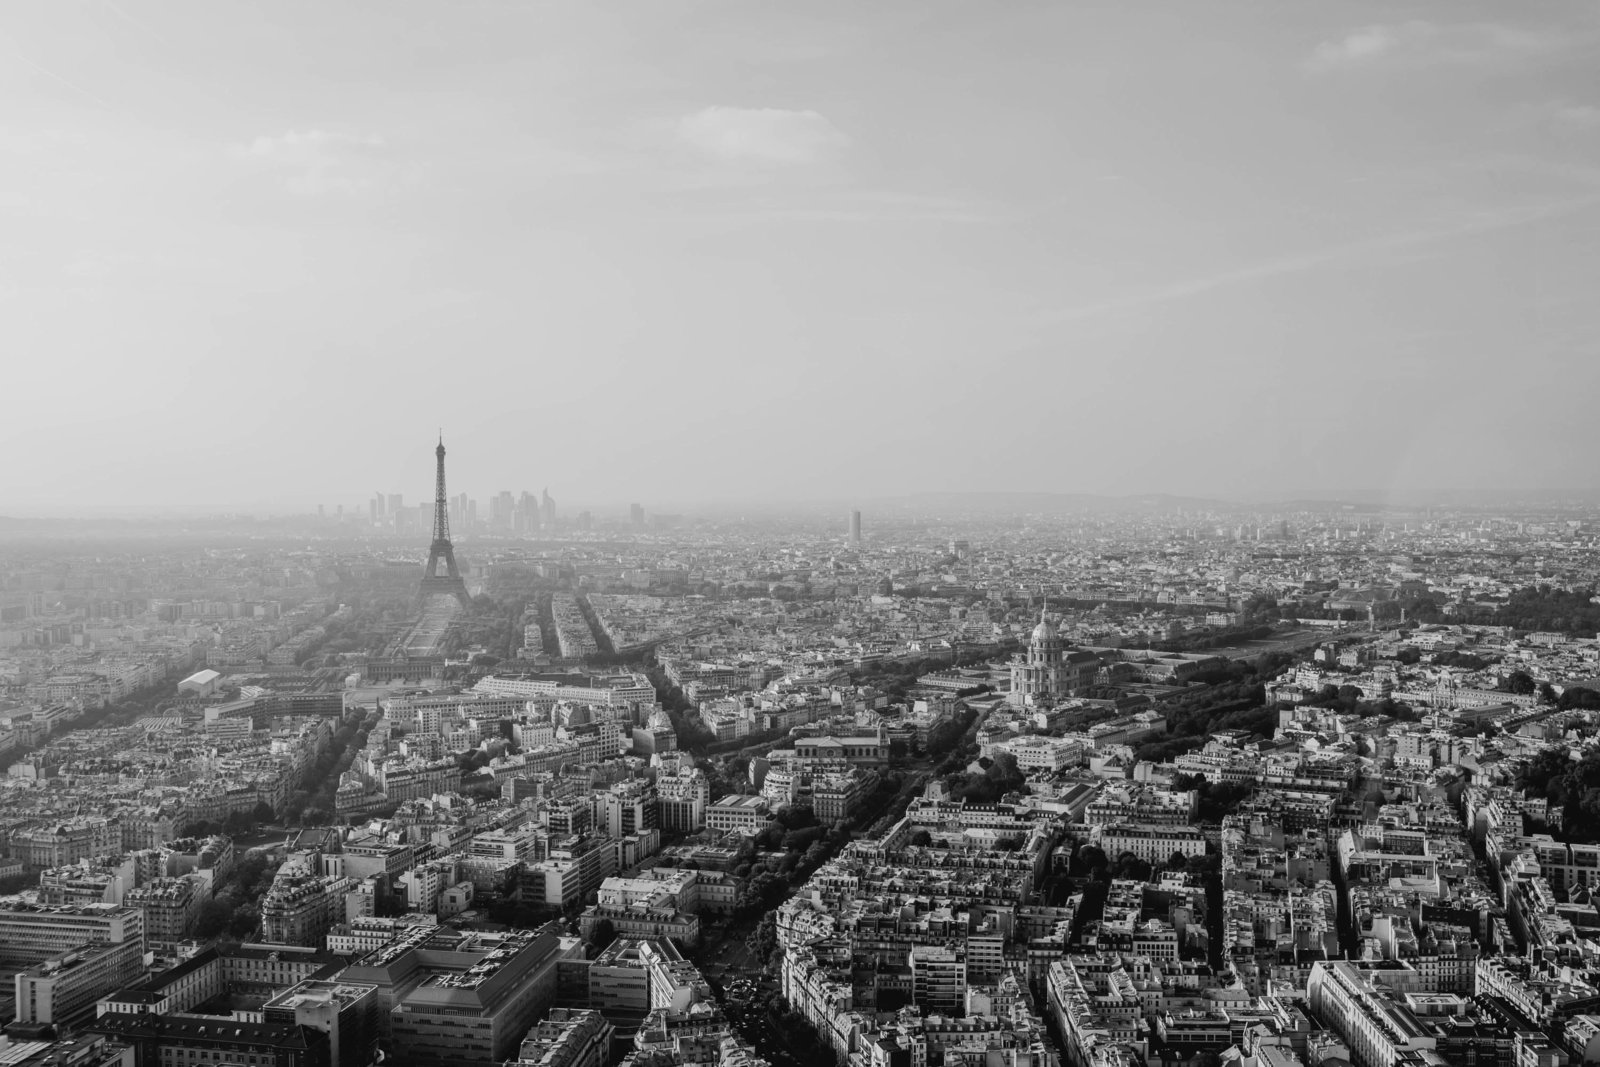 skyline-eiffel-tower-paris-france-travel-destination-wedding-kate-timbers-photography-1973